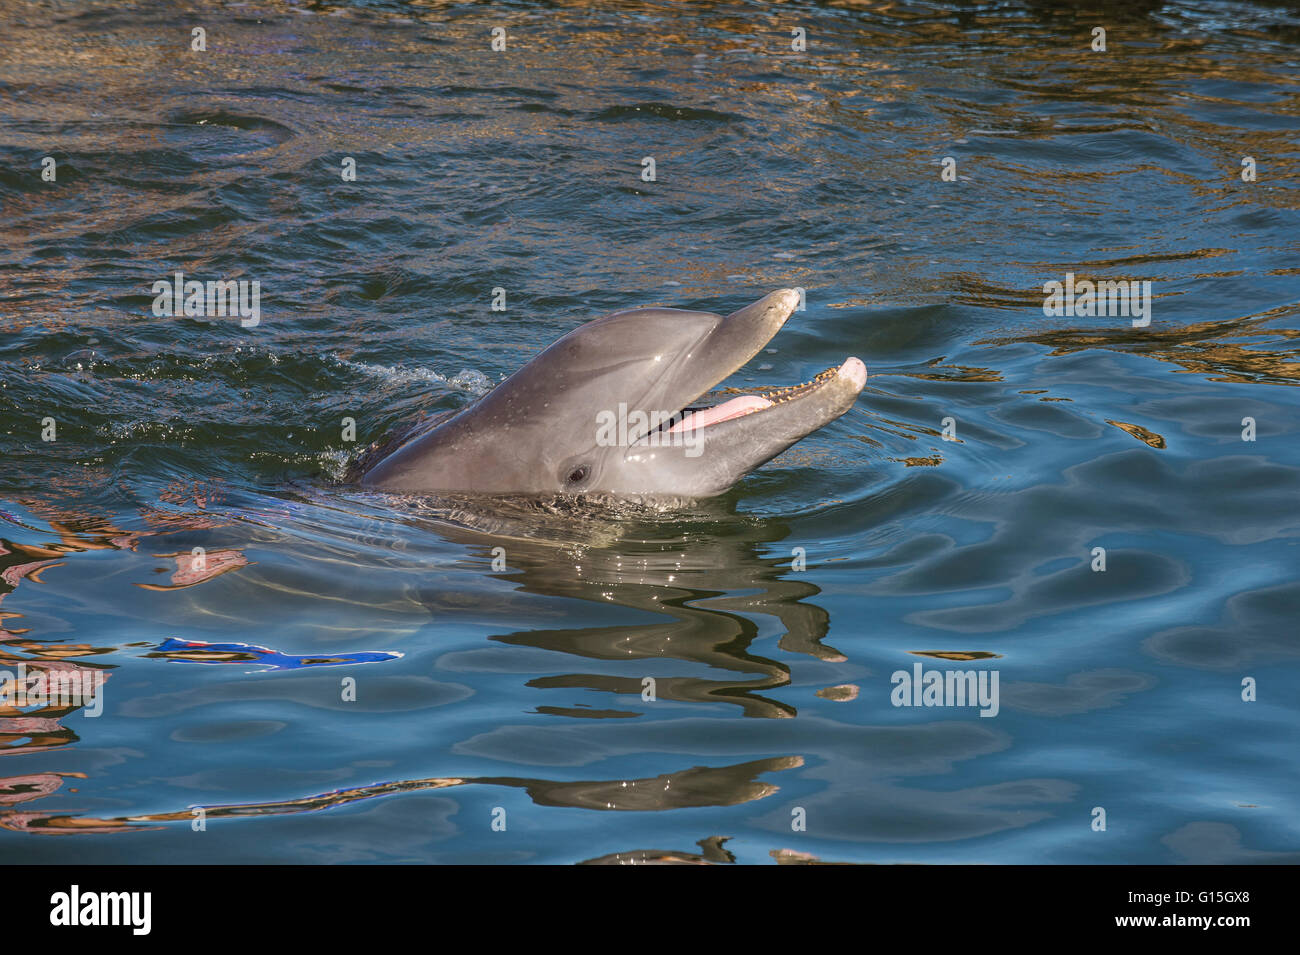 Bottlenose Dolphin, Tursiops tursiops, Grassy Key, Florida, United States of America, North America - Stock Image